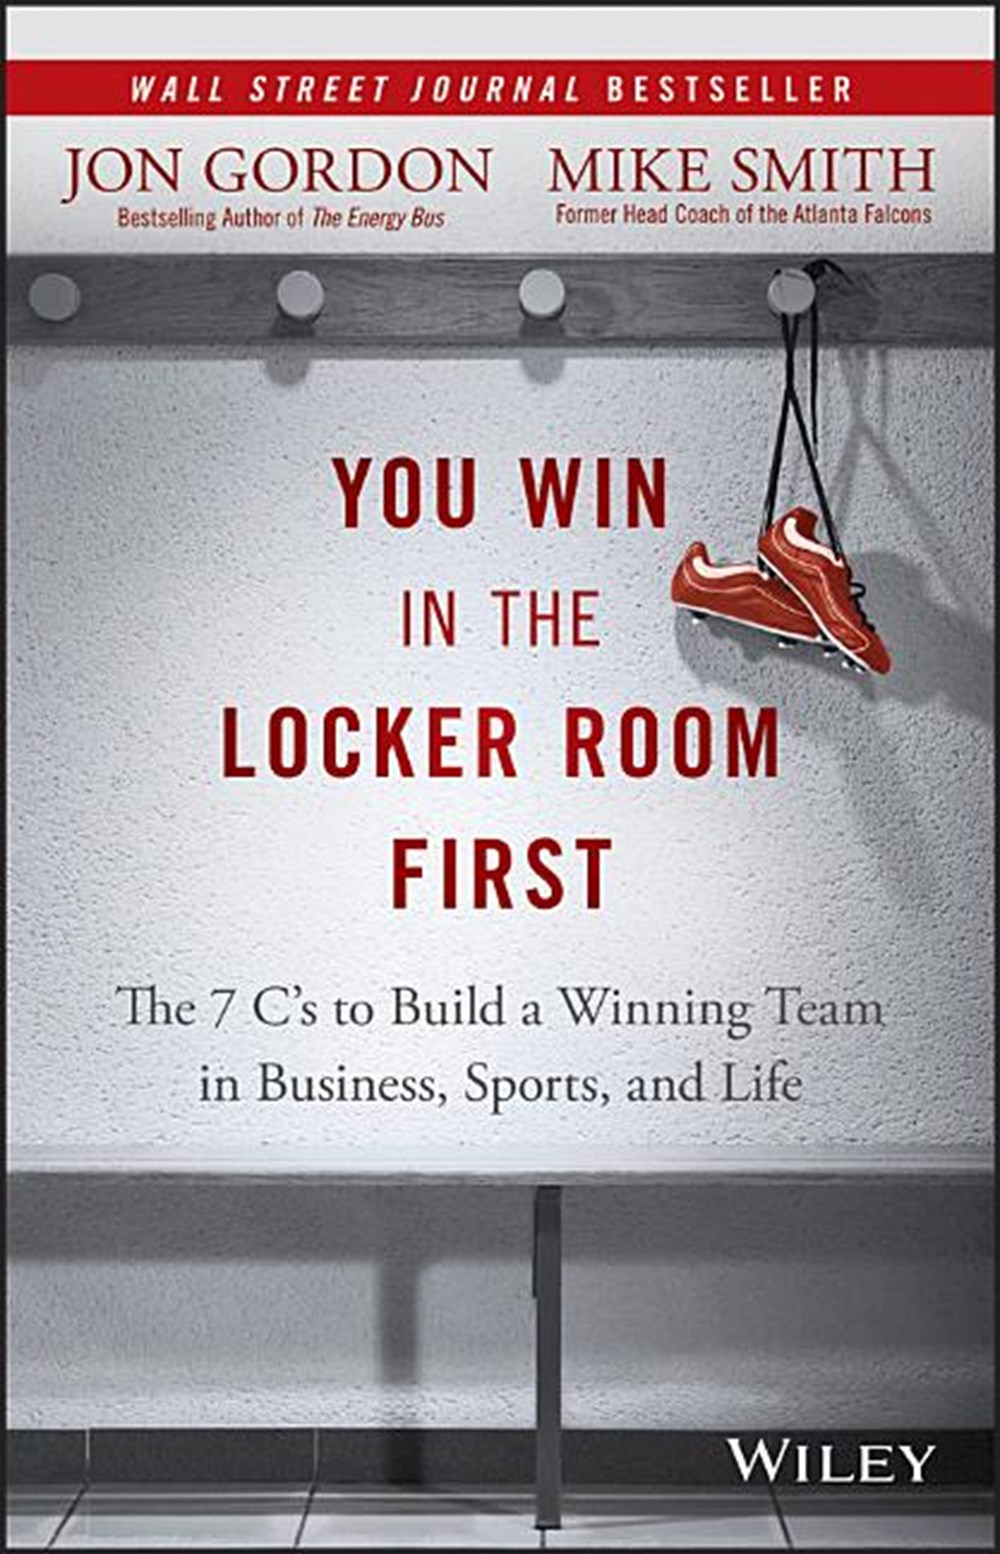 You Win in the Locker Room First The 7 C's to Build a Winning Team in Business, Sports, and Life